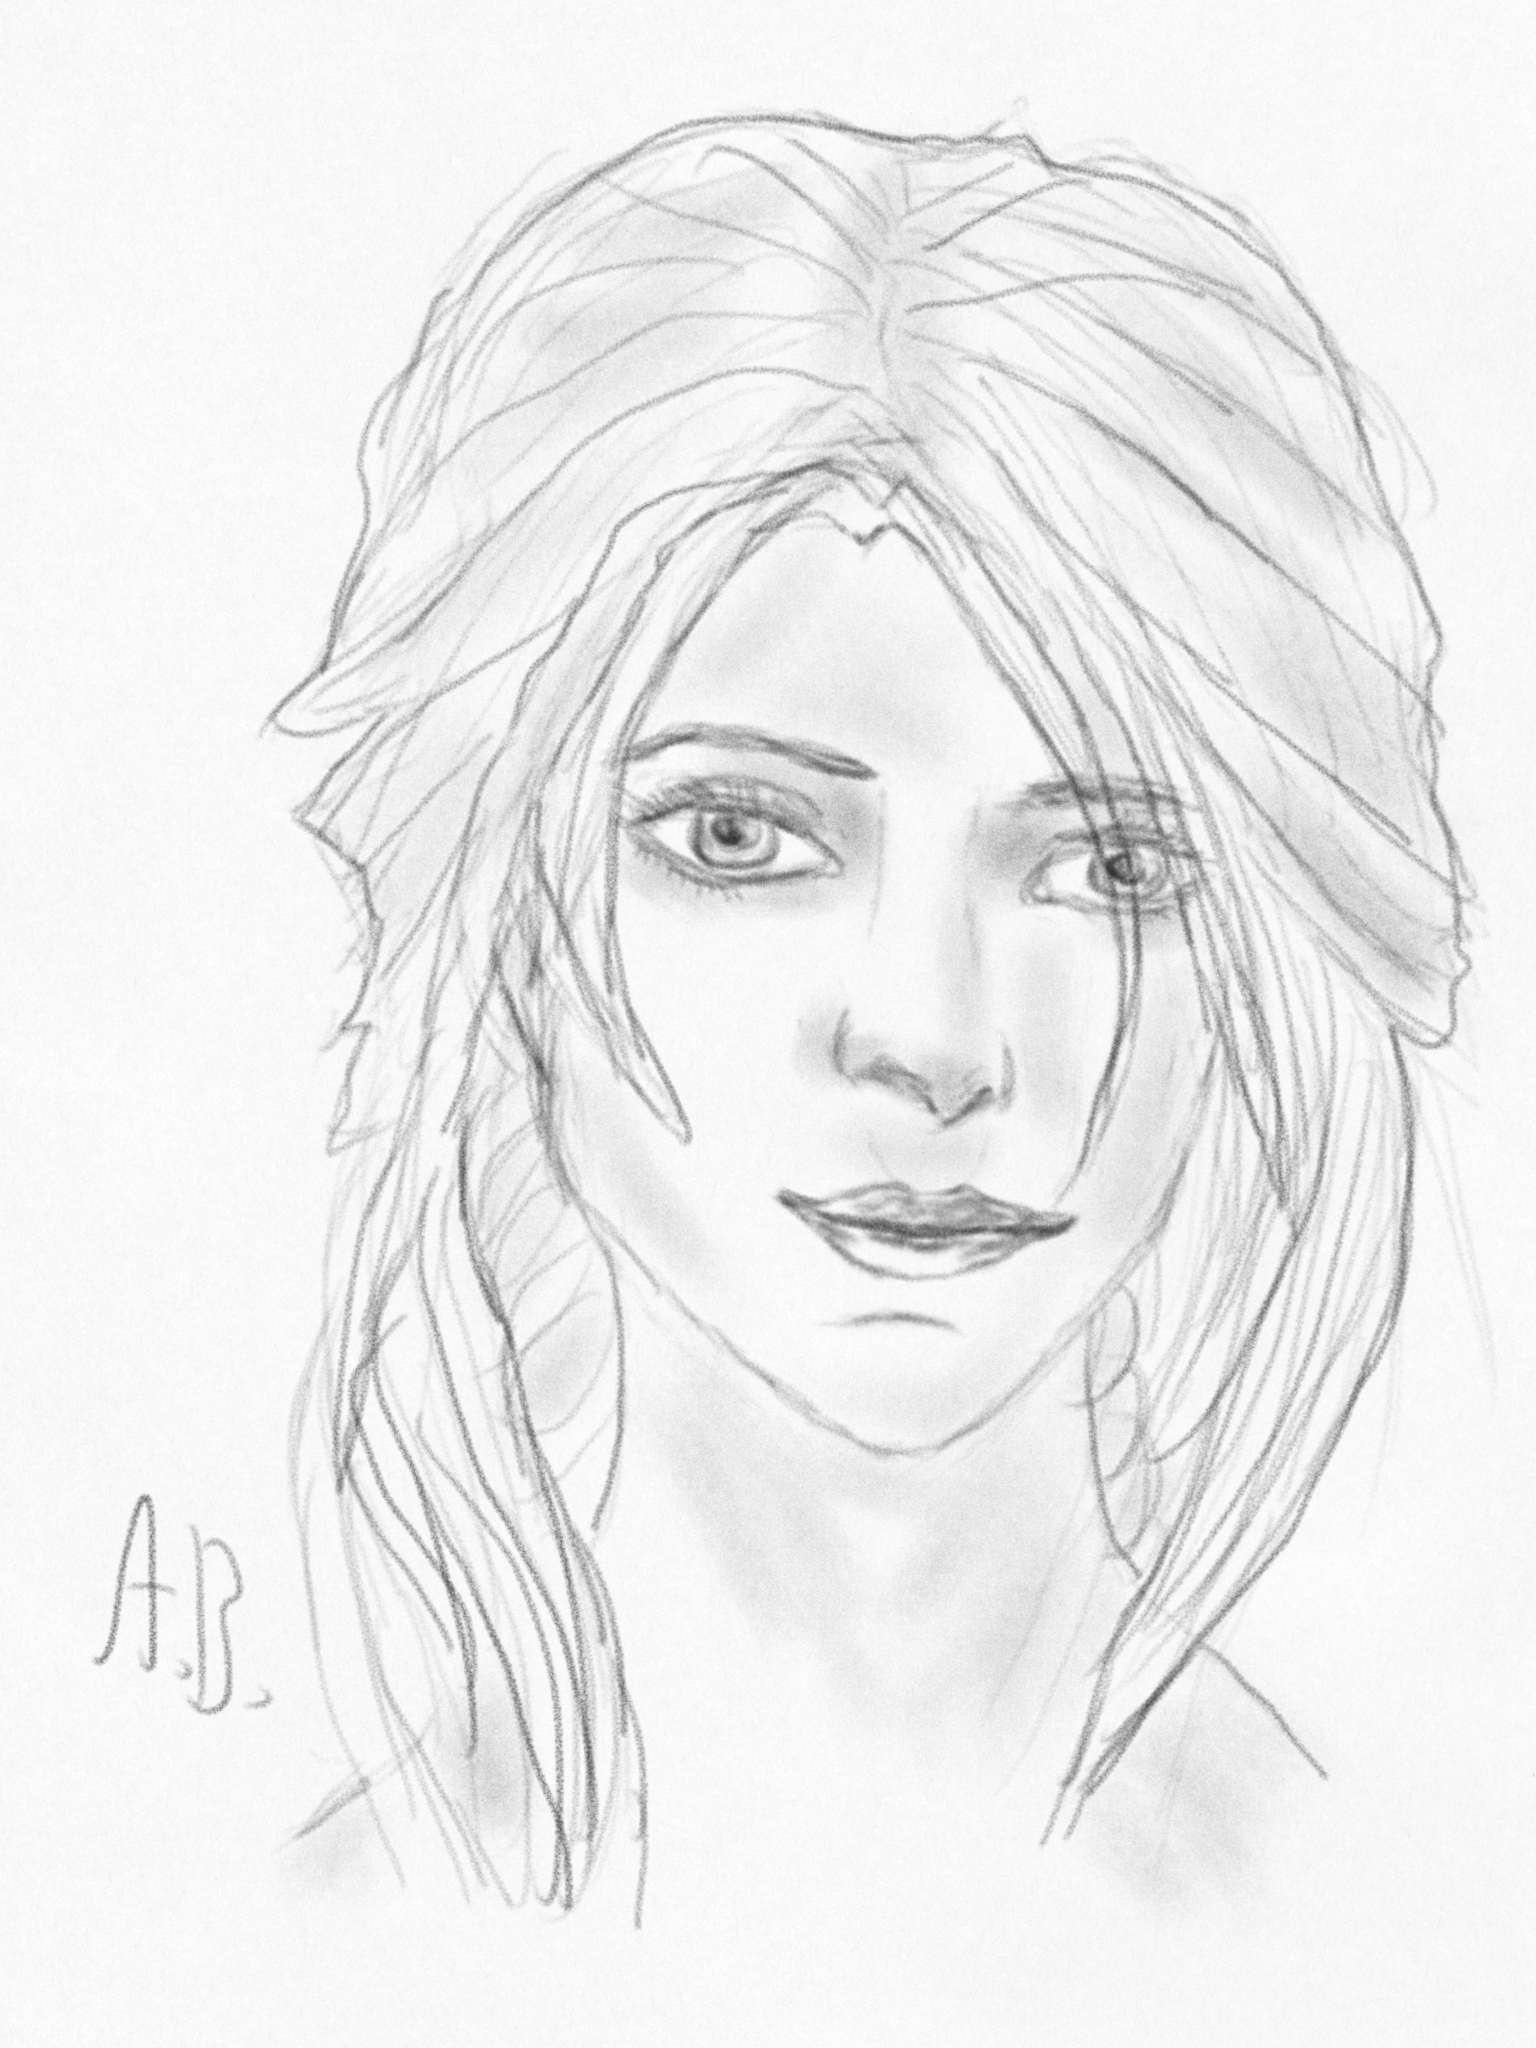 1536x2048 Sketch 89 Drawn With Interactive Sketchbook. Alanna's Sketches